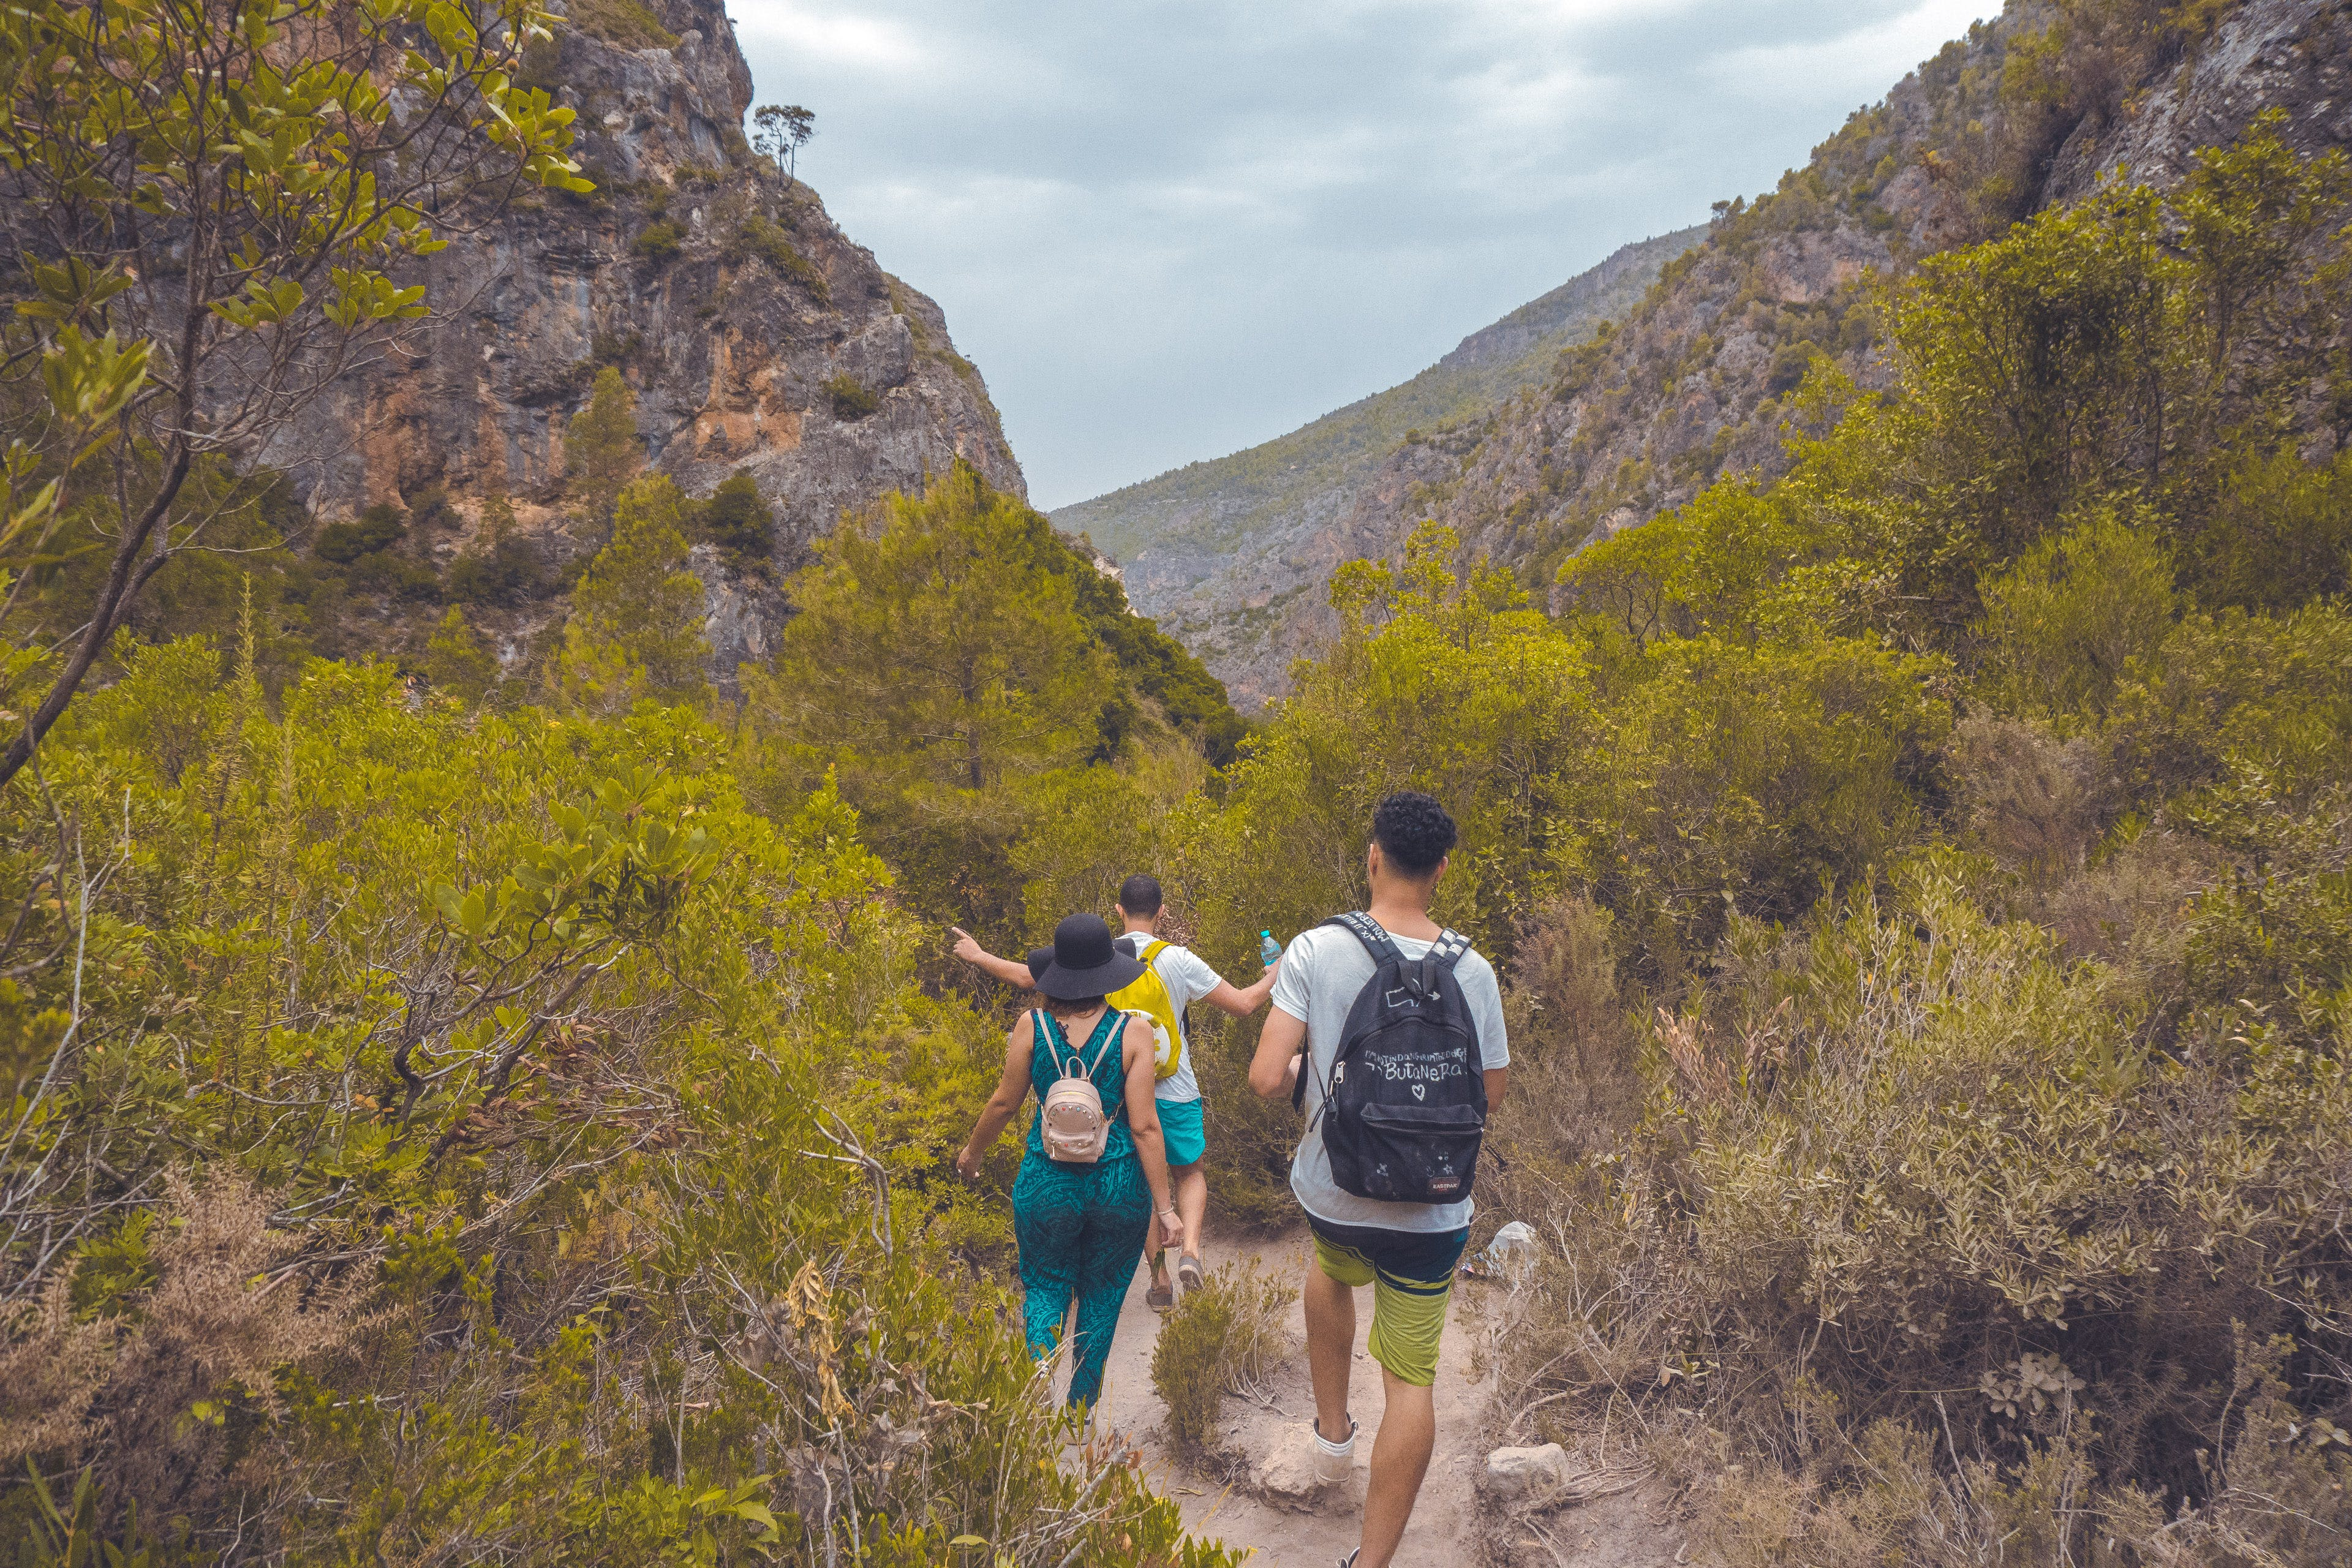 Two Men and Woman Walking Surrounded by Mountain and Trees